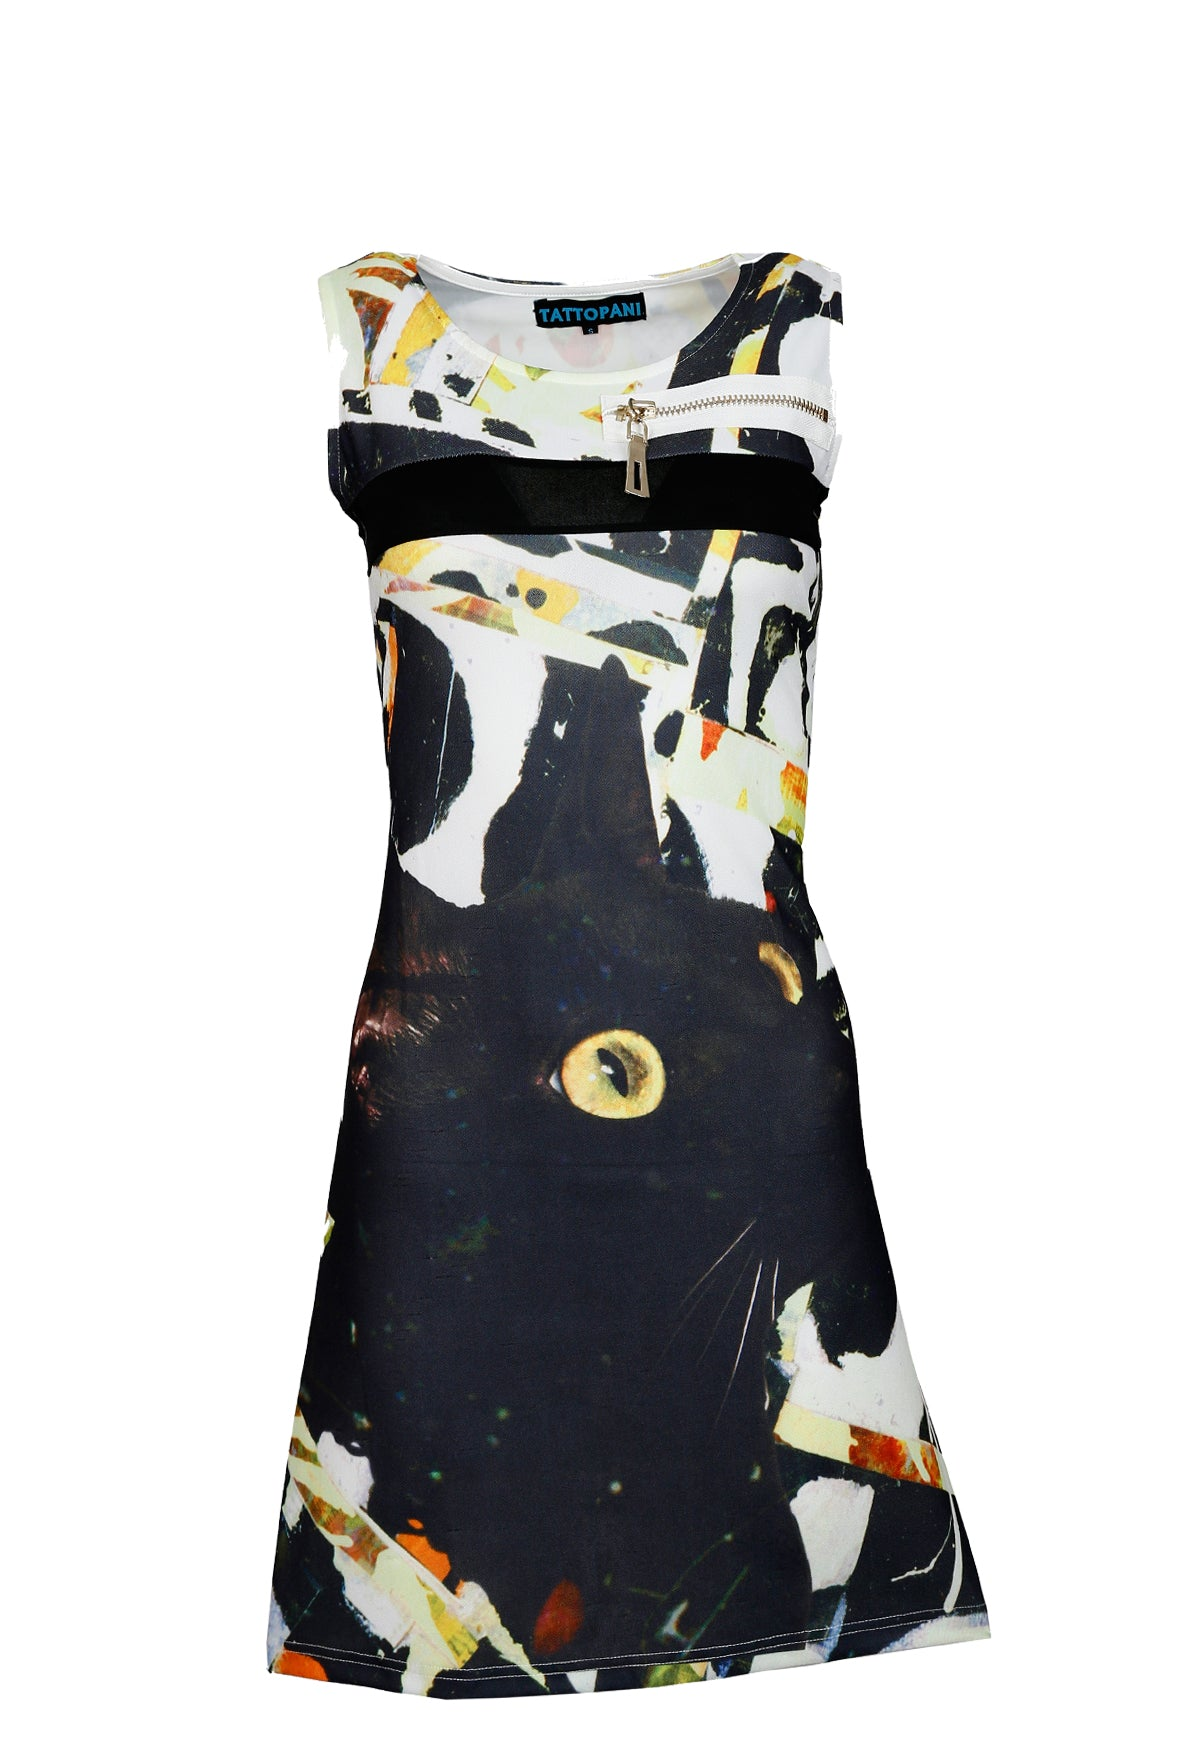 Ladies sleeveless dress with multicolored pattern print - Craze Trade Limited